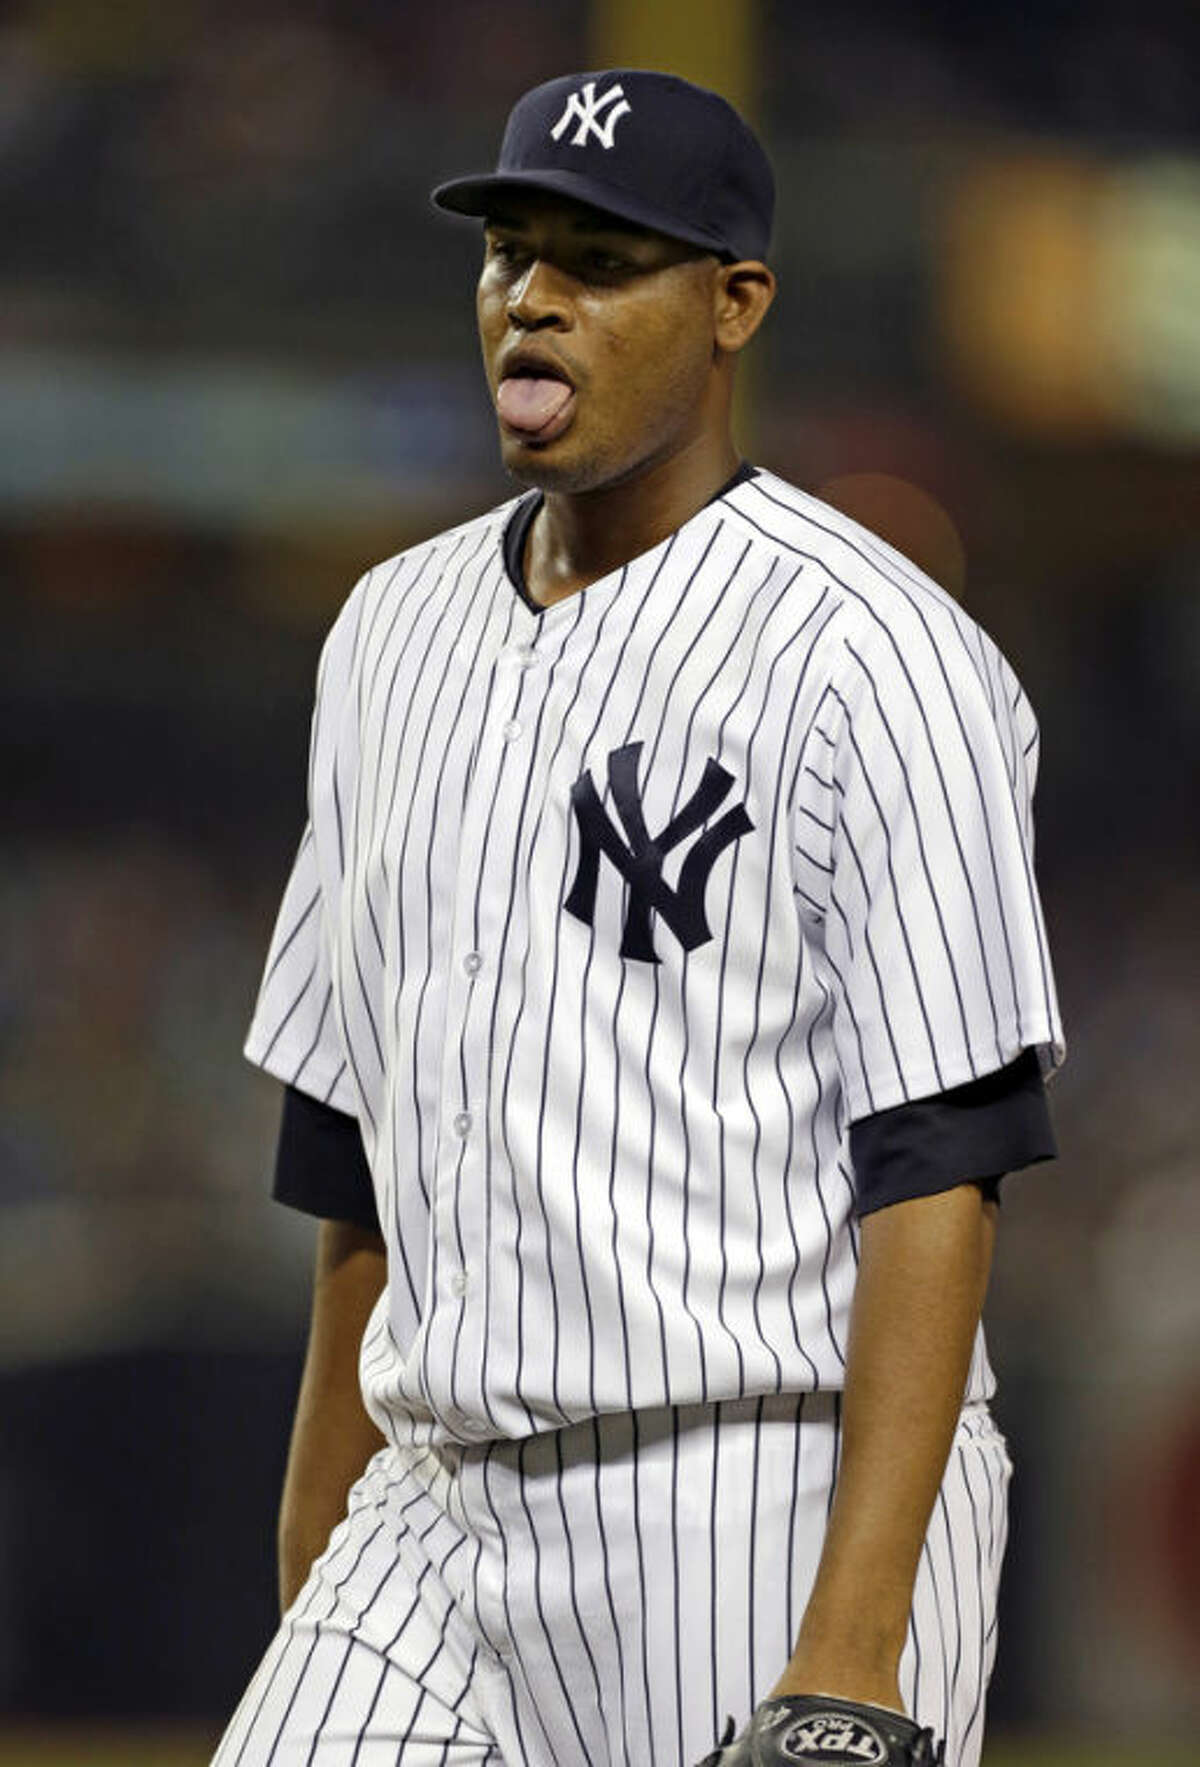 New York Yankees starting pitcher Ivan Nova reacts after getting out a jam in the fifth inning of a baseball game against the Kansas City Royals, Wednesday, July 10, 2013, in New York. (AP Photo/Kathy Willens)